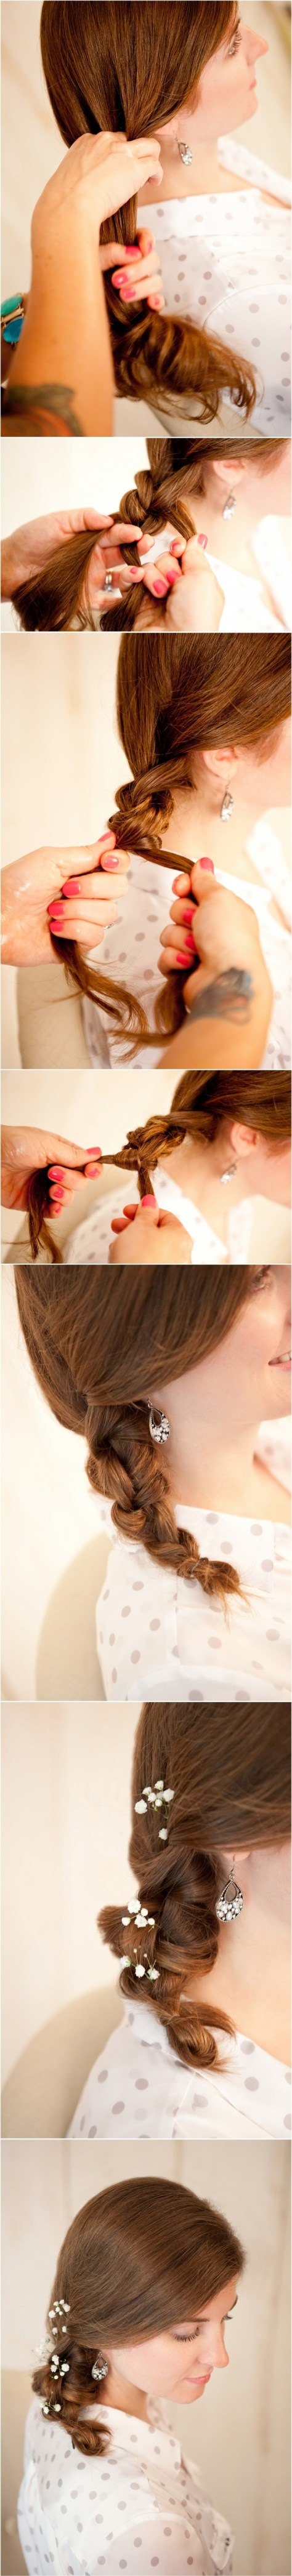 Knot Braid Tutorial